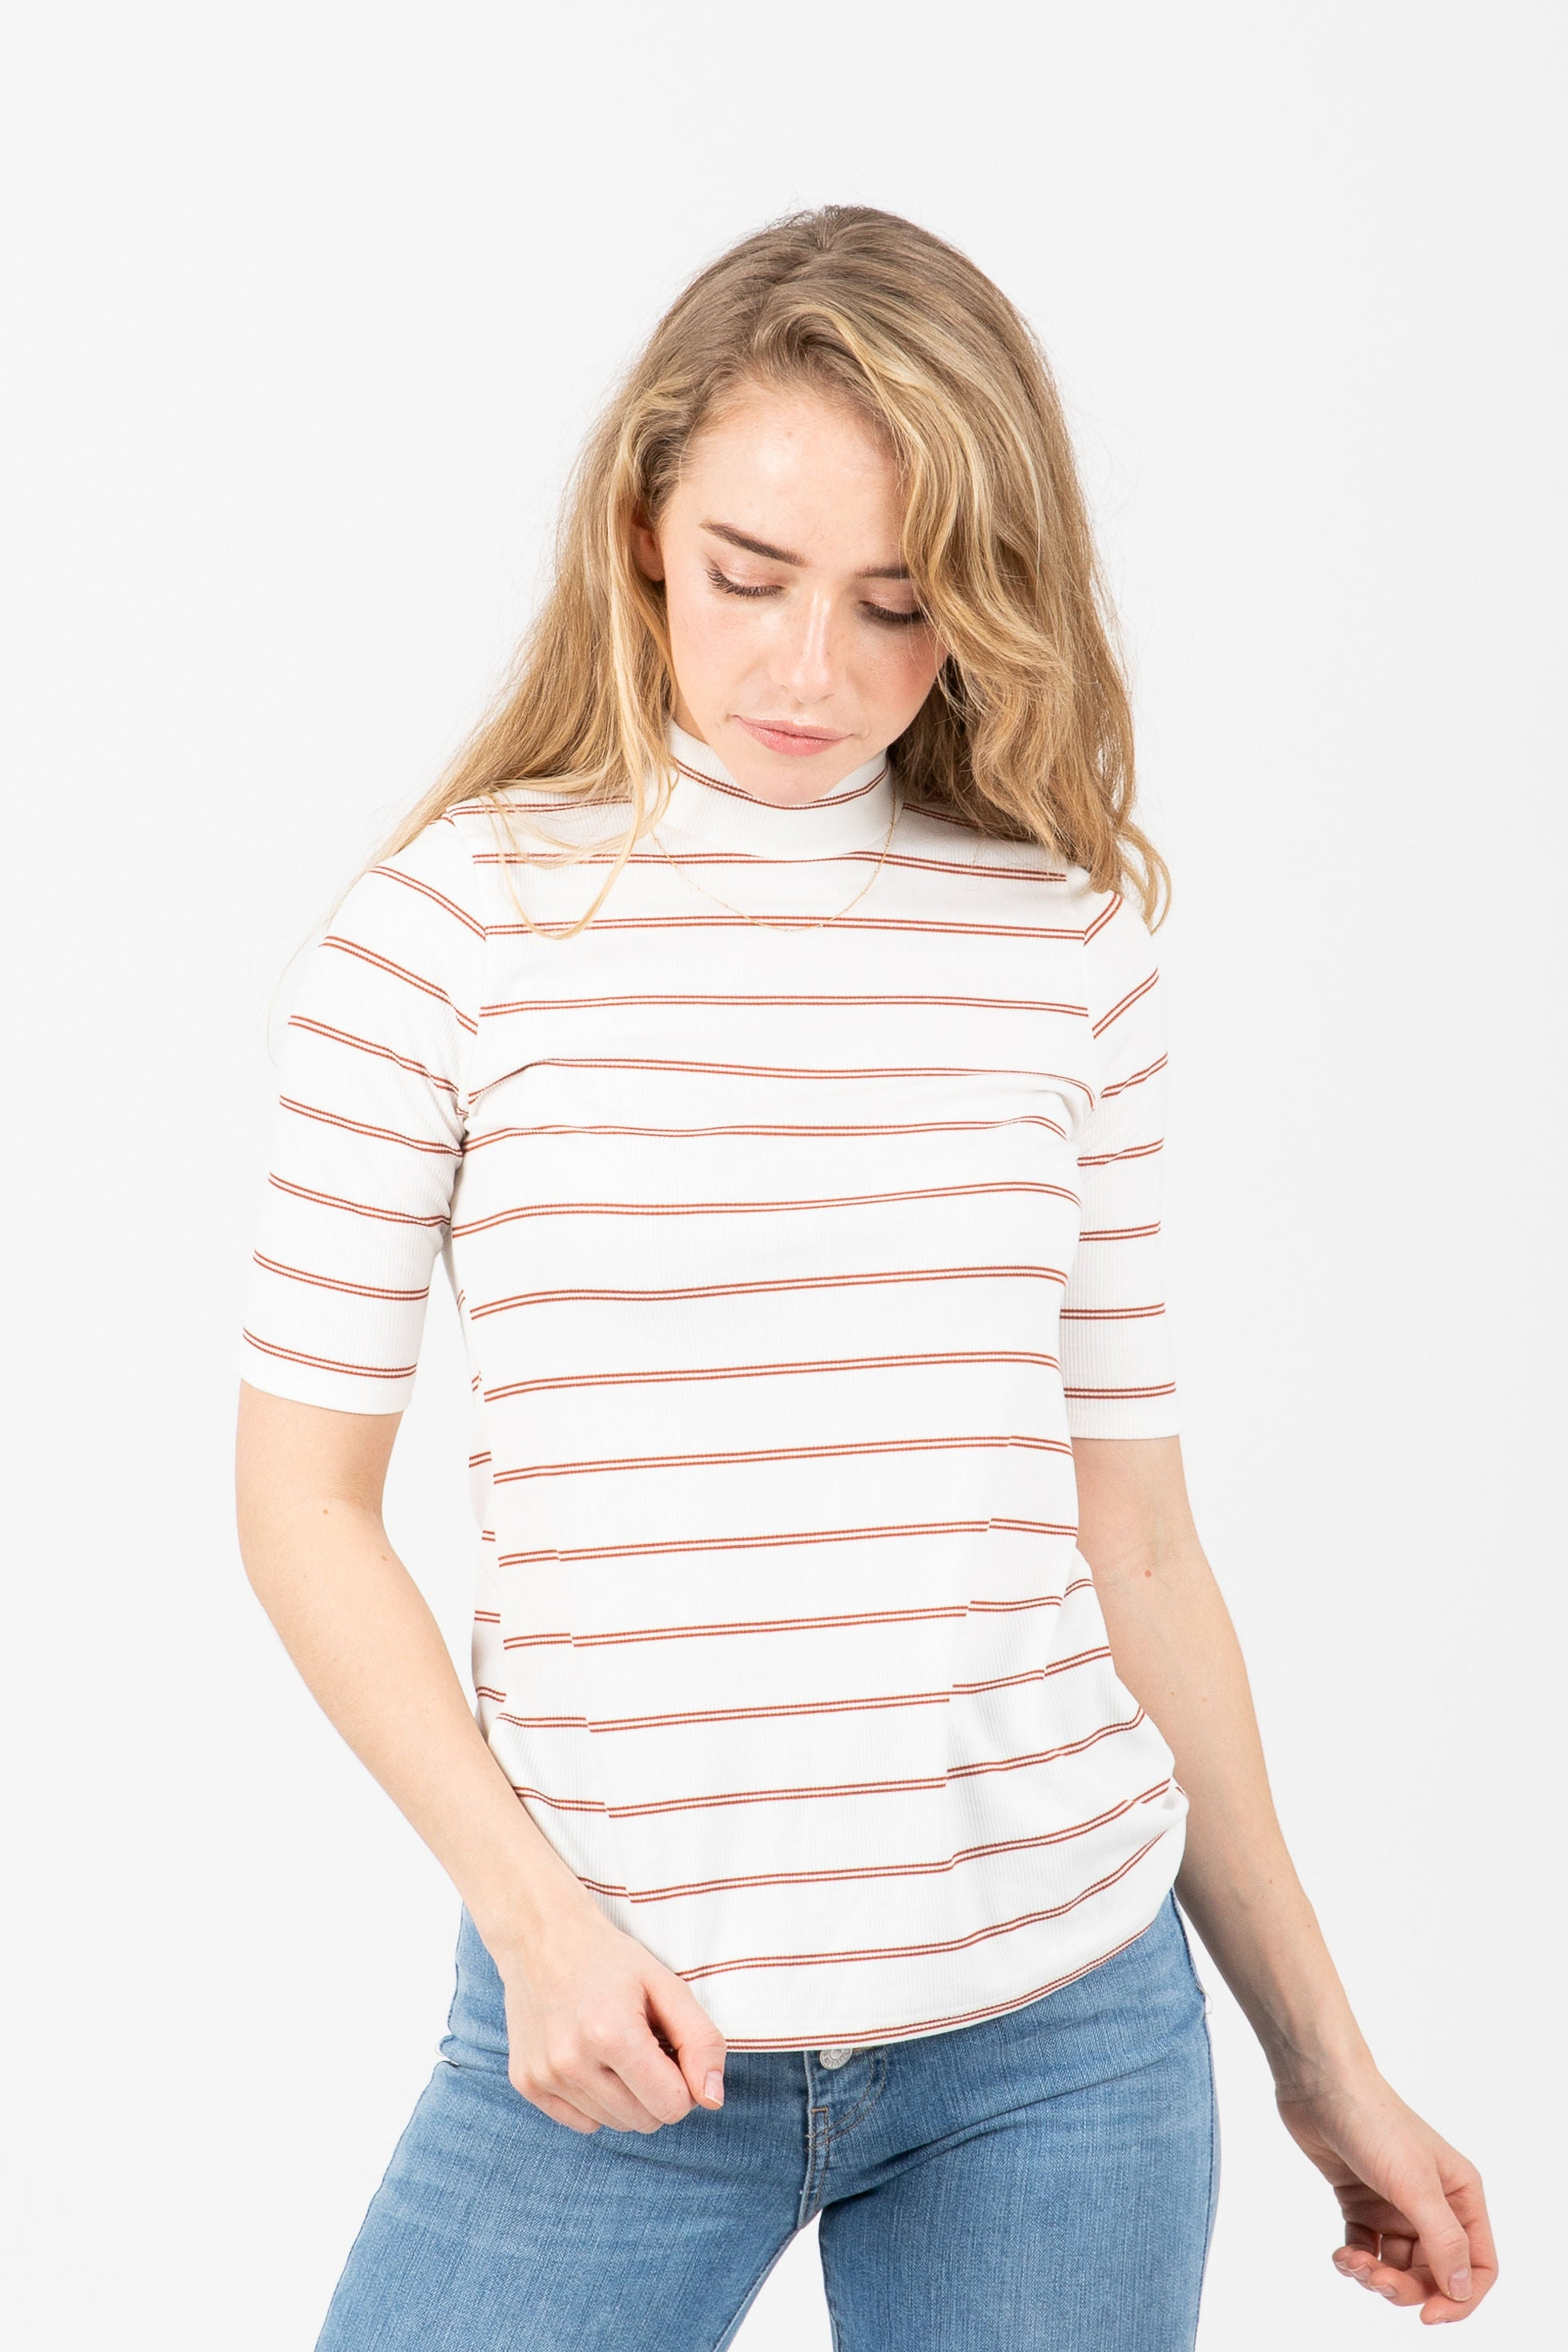 The Devoted Striped Mockneck in Chili